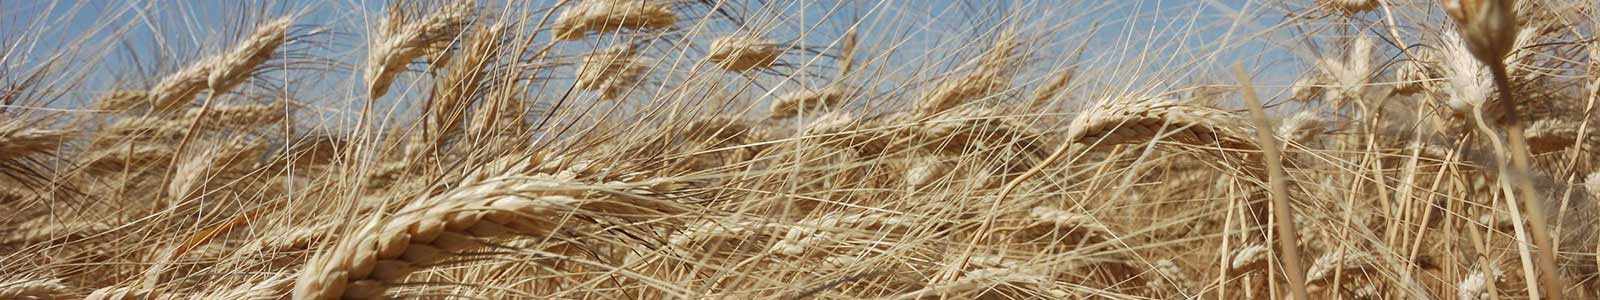 cgiar research program on wheat cimmyt international maize and